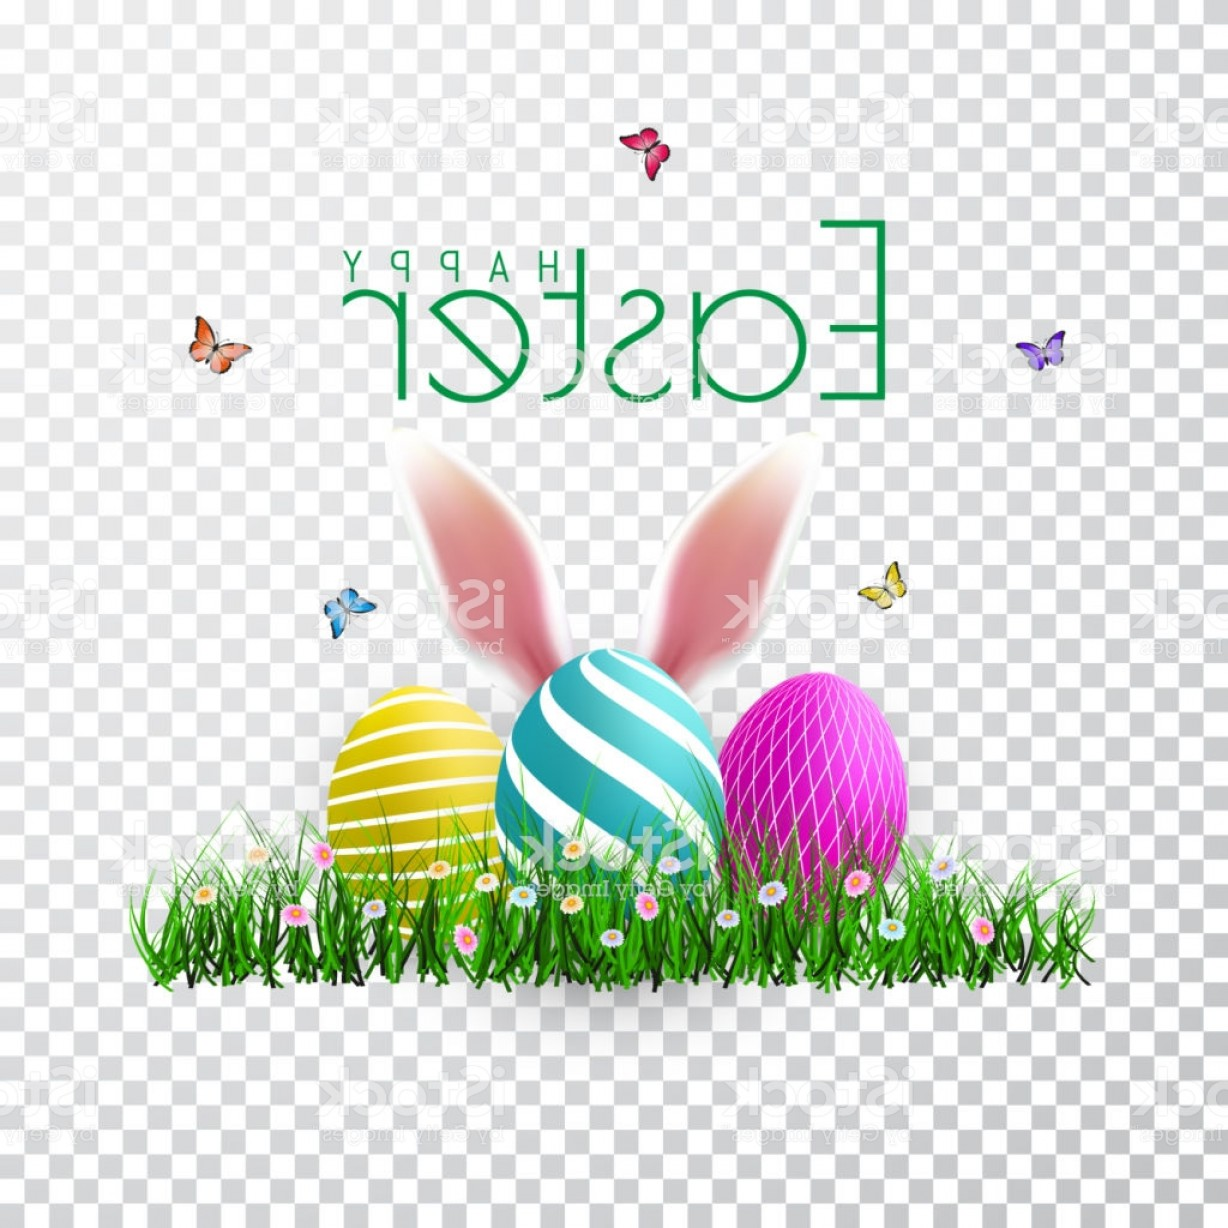 Easter Vector No Background: Vector Easter Eggs With Grass Butterfly And Flowers Isolated On A Transparent Gm